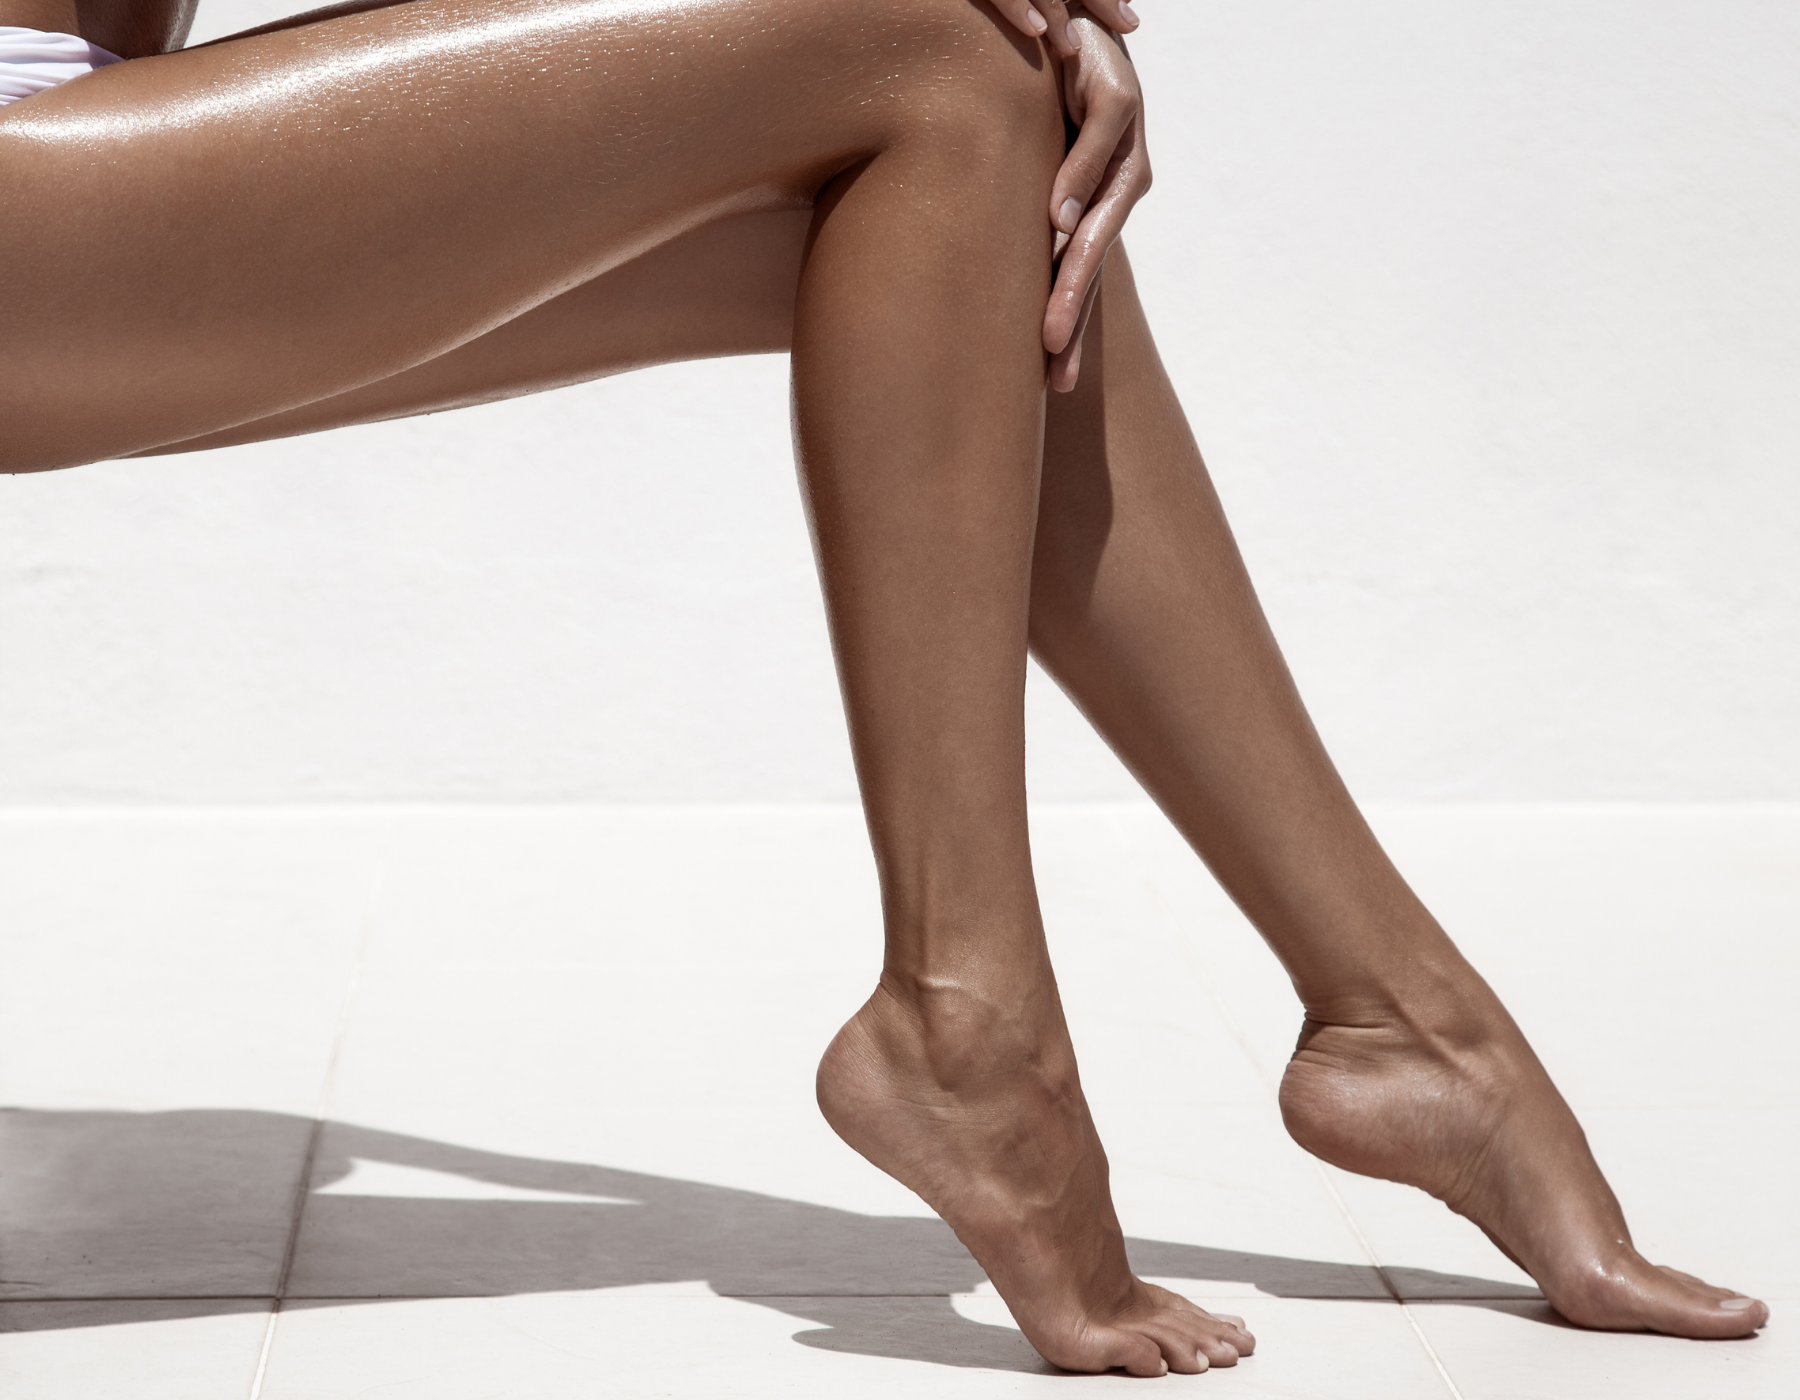 How To Prep And Prolong Your Tan